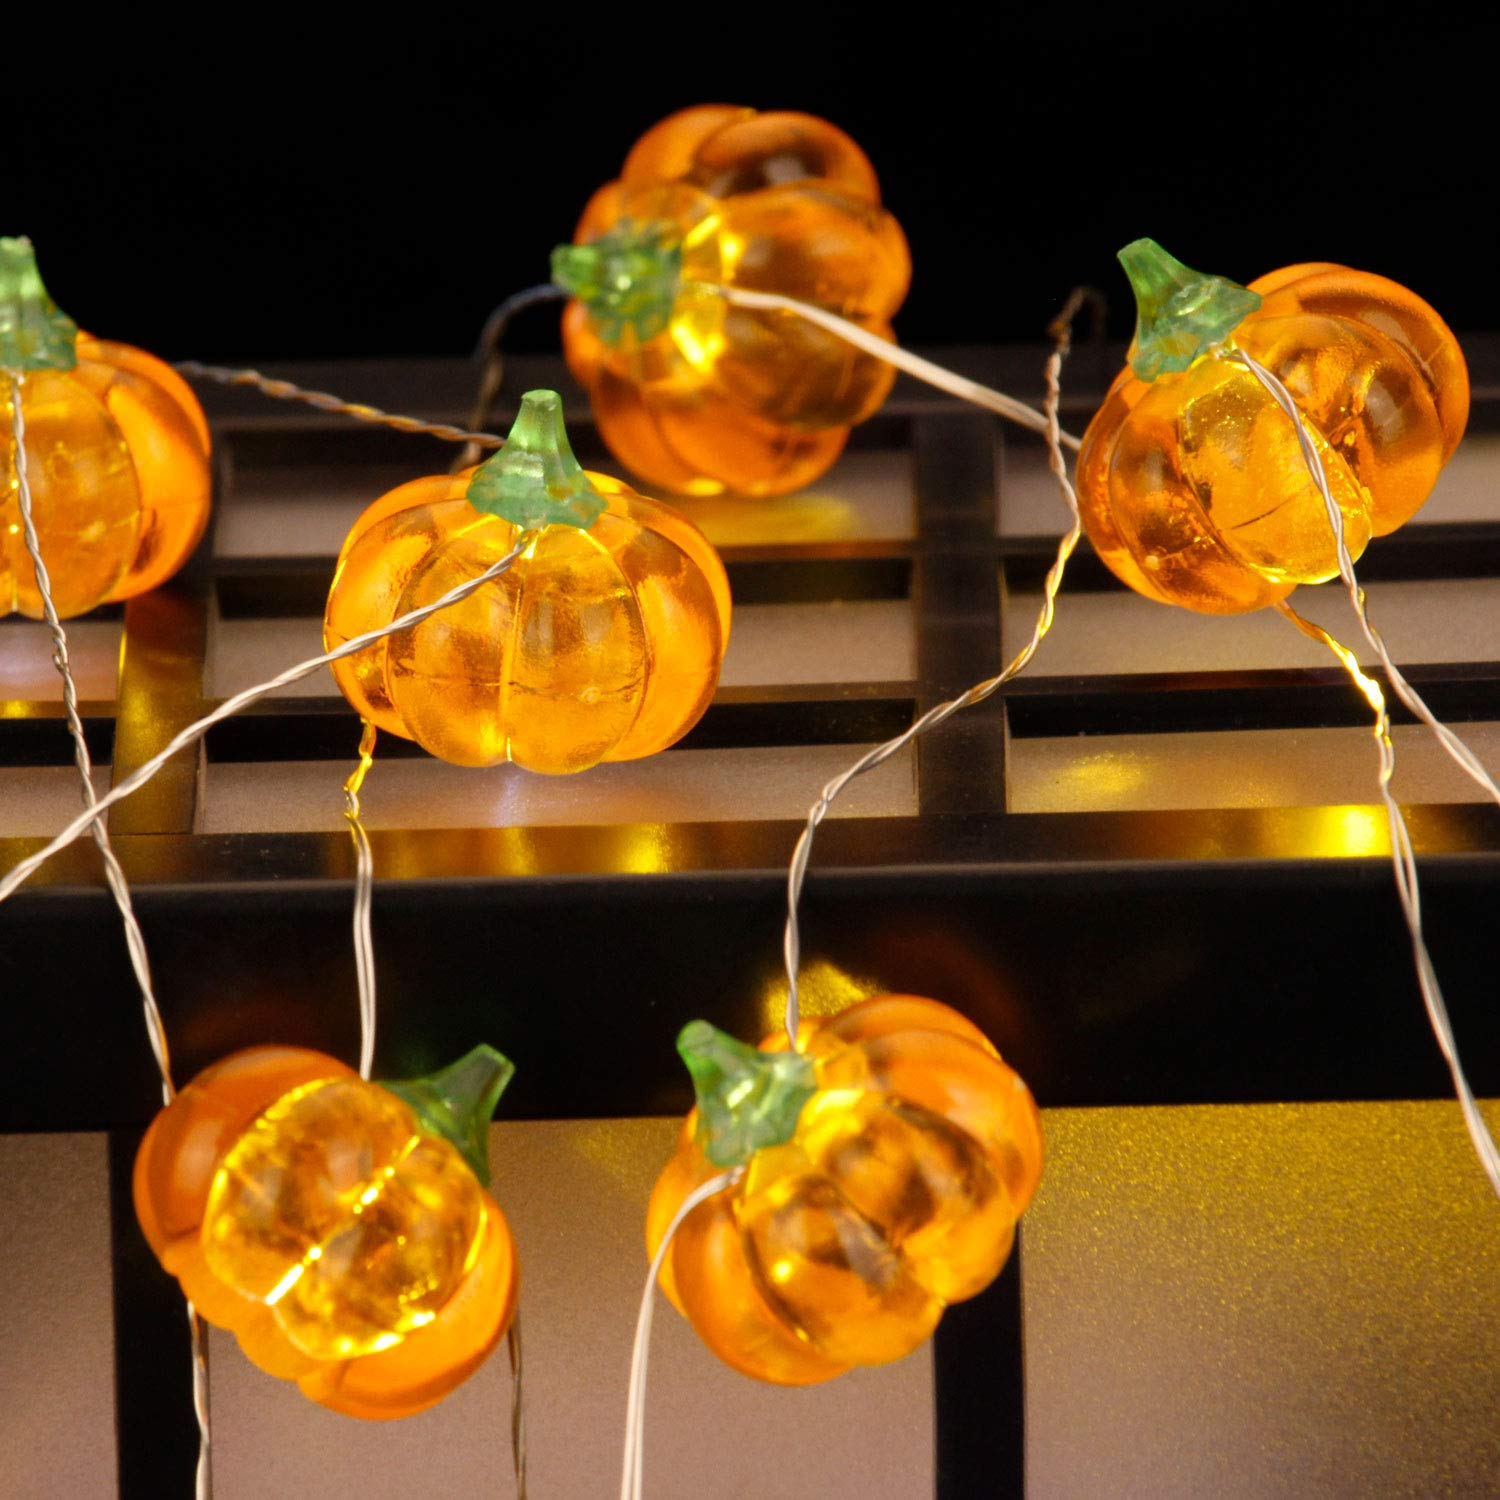 Harvest, Halloween Festive Lighting Decoraions, 3D Pumpkin Themed Timer String Lights, 10ft 20LEDs with Remote & Multi Flicker Mode, Ideas for House, Wedding, Cosplay, Birthday, Bedroom, Porch Decor